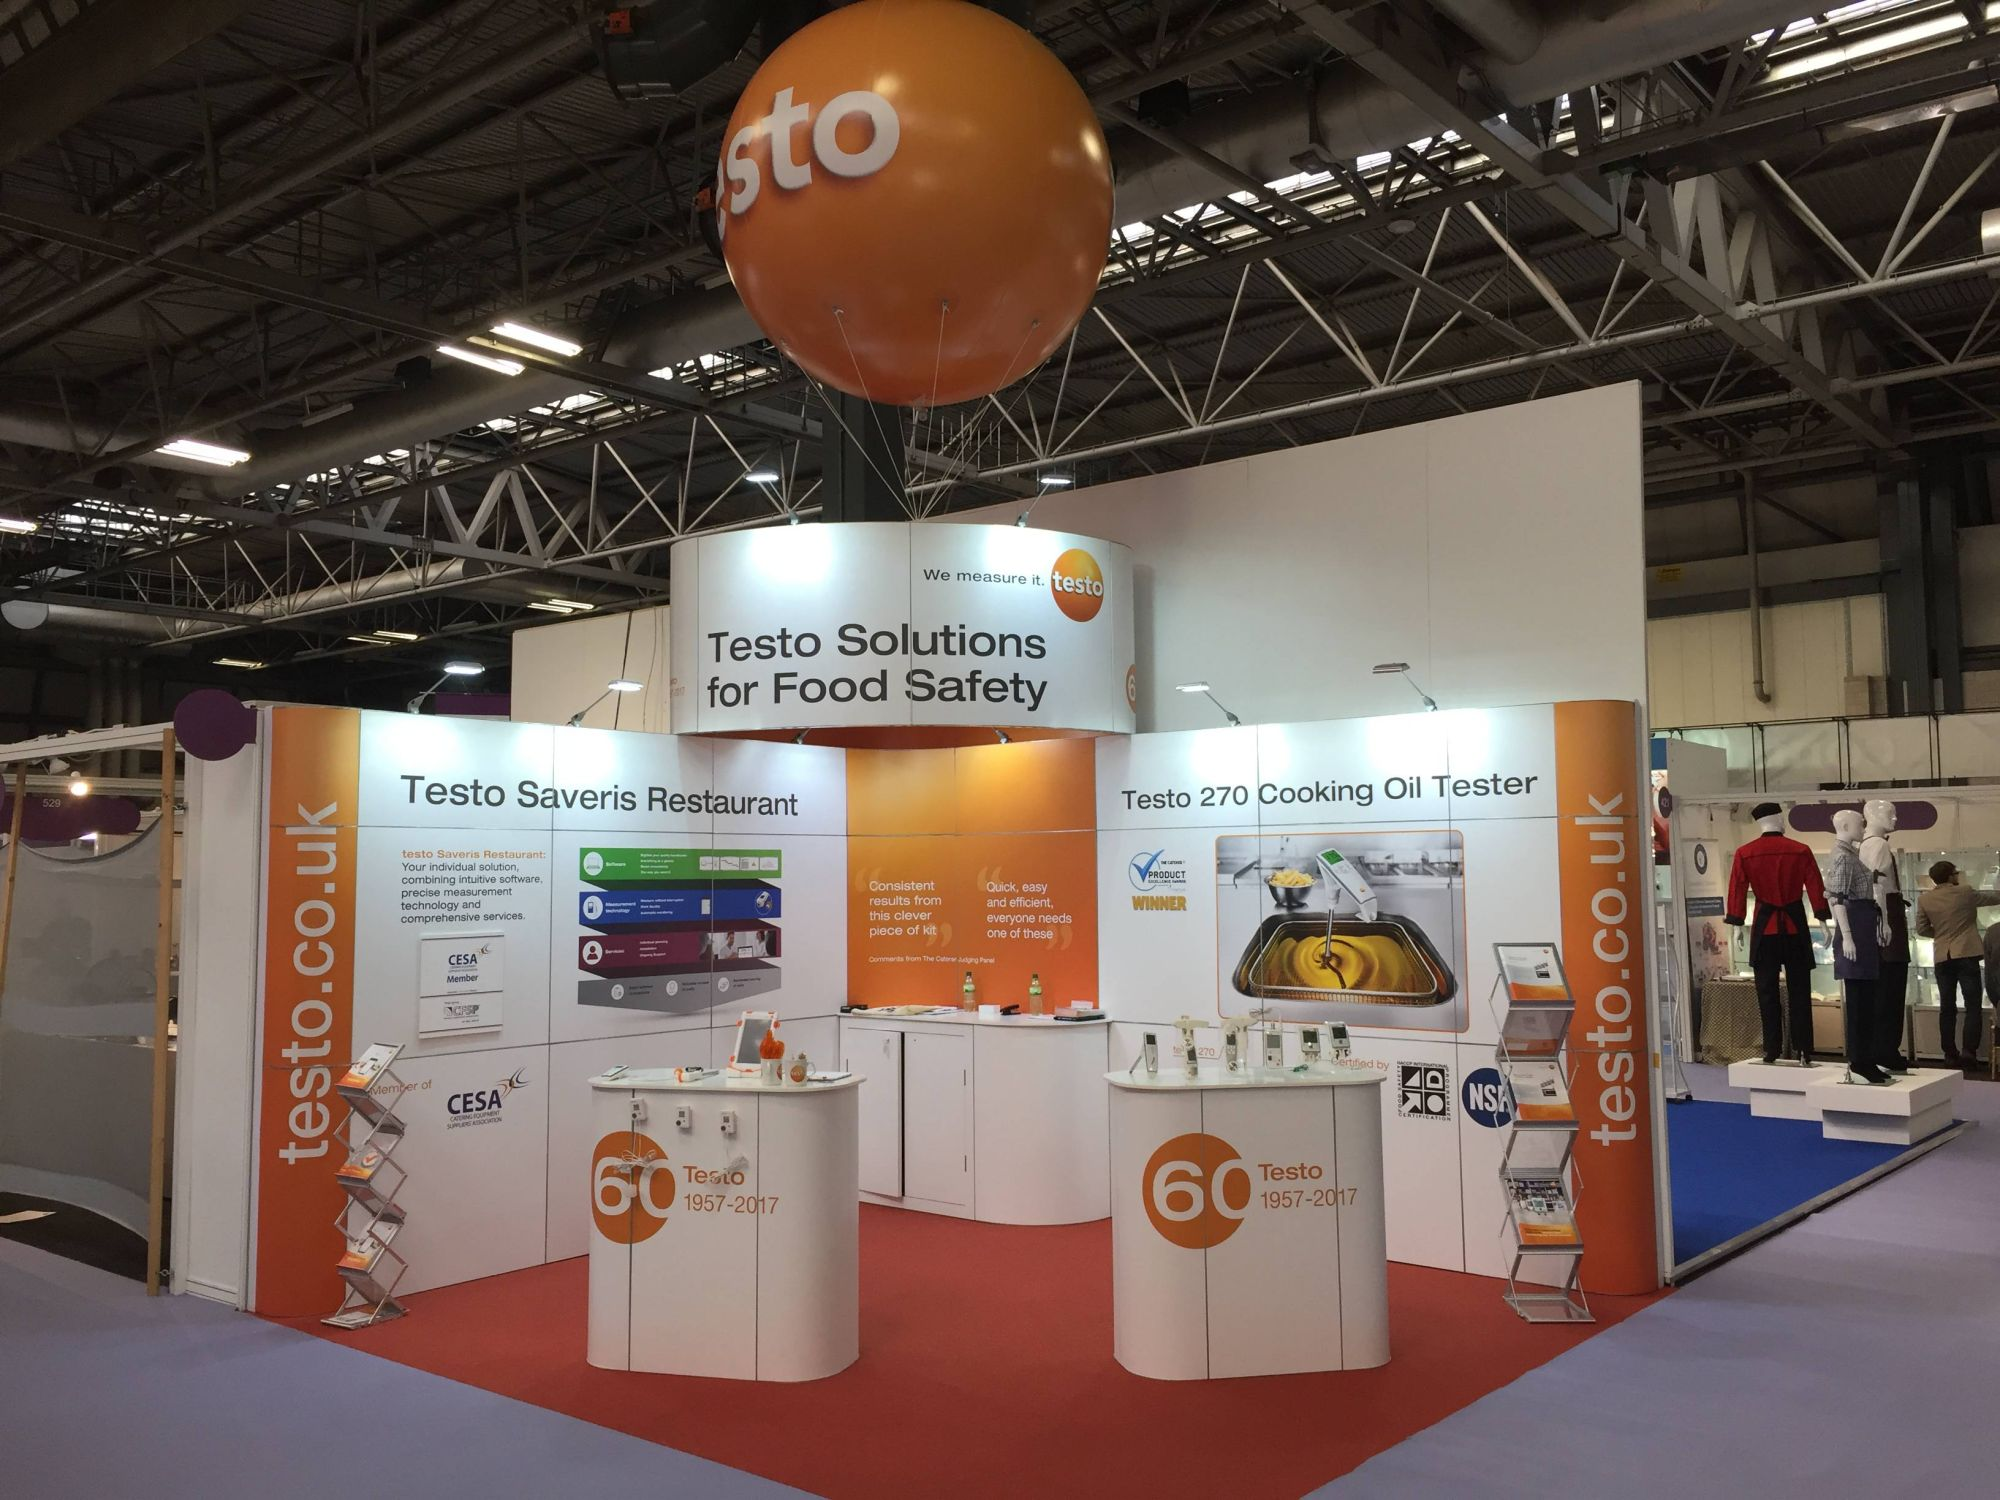 testo-commercial-kitchen-stand.JPG